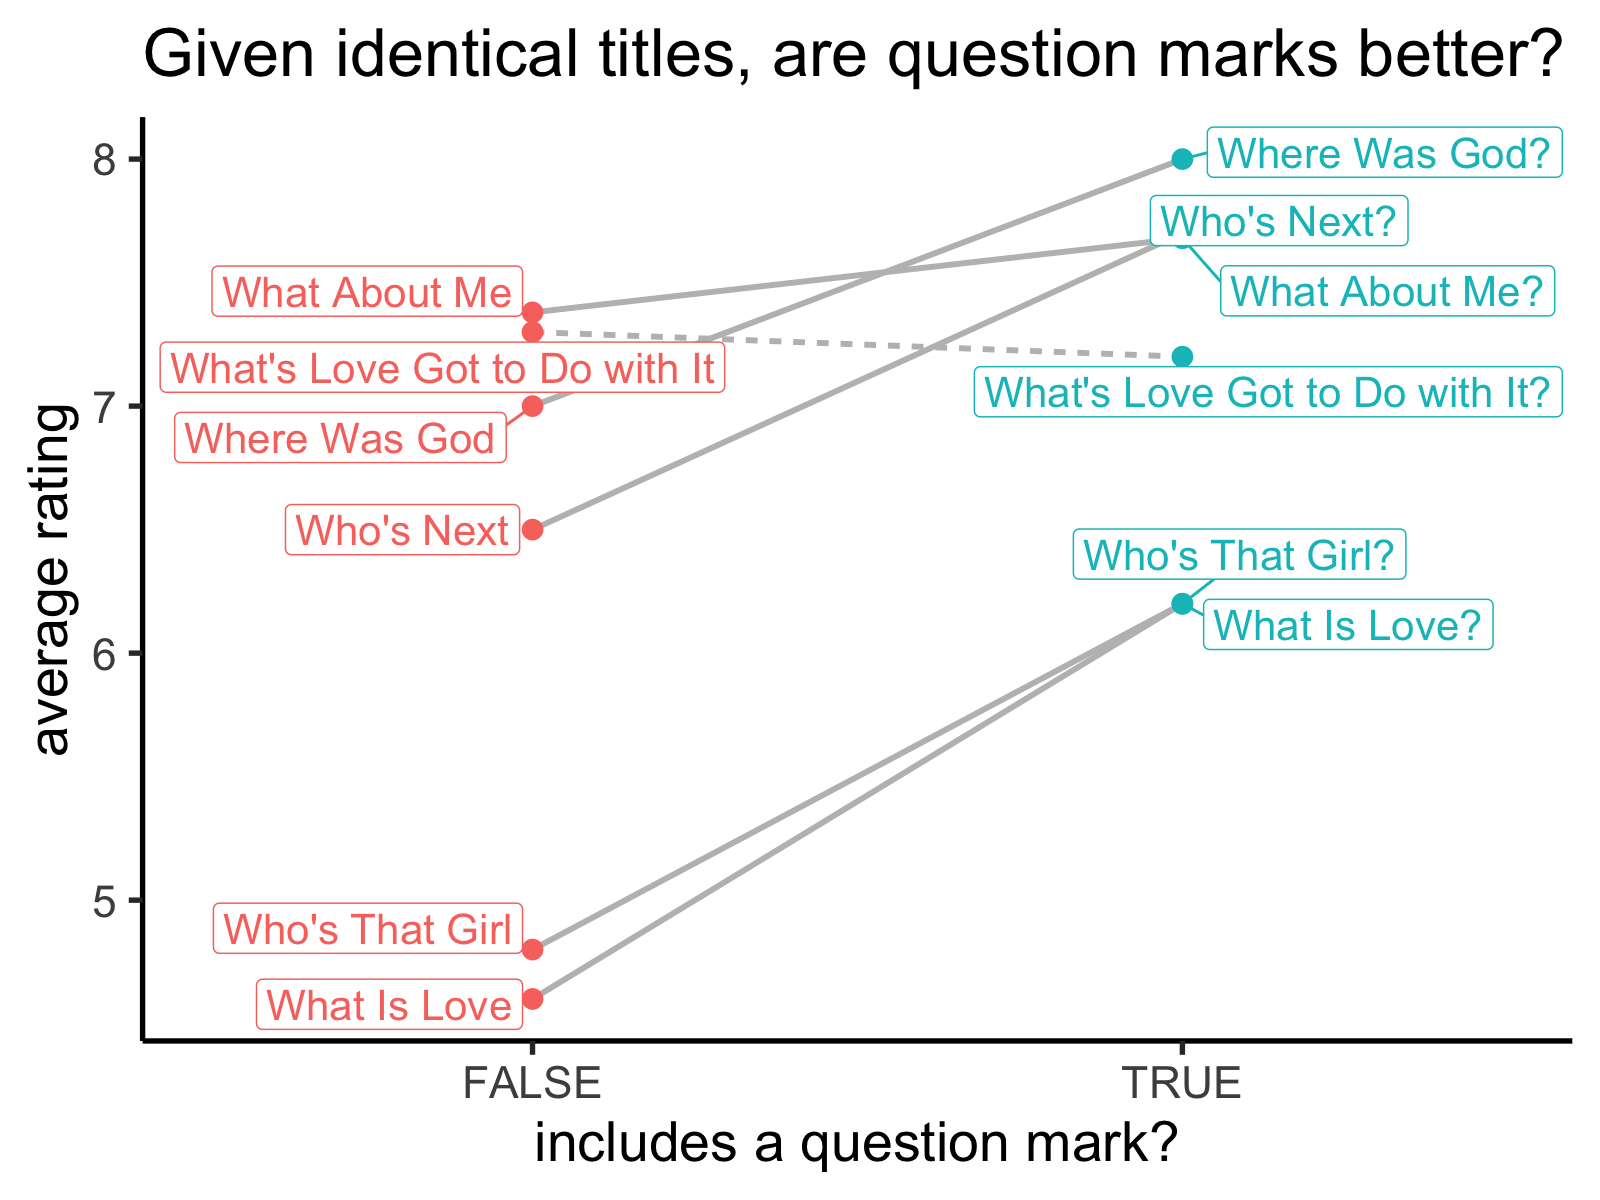 When we compare paired movie titles, the counterparts with question marks get better ratings! (Except for the one pair marked by a dashed line.)